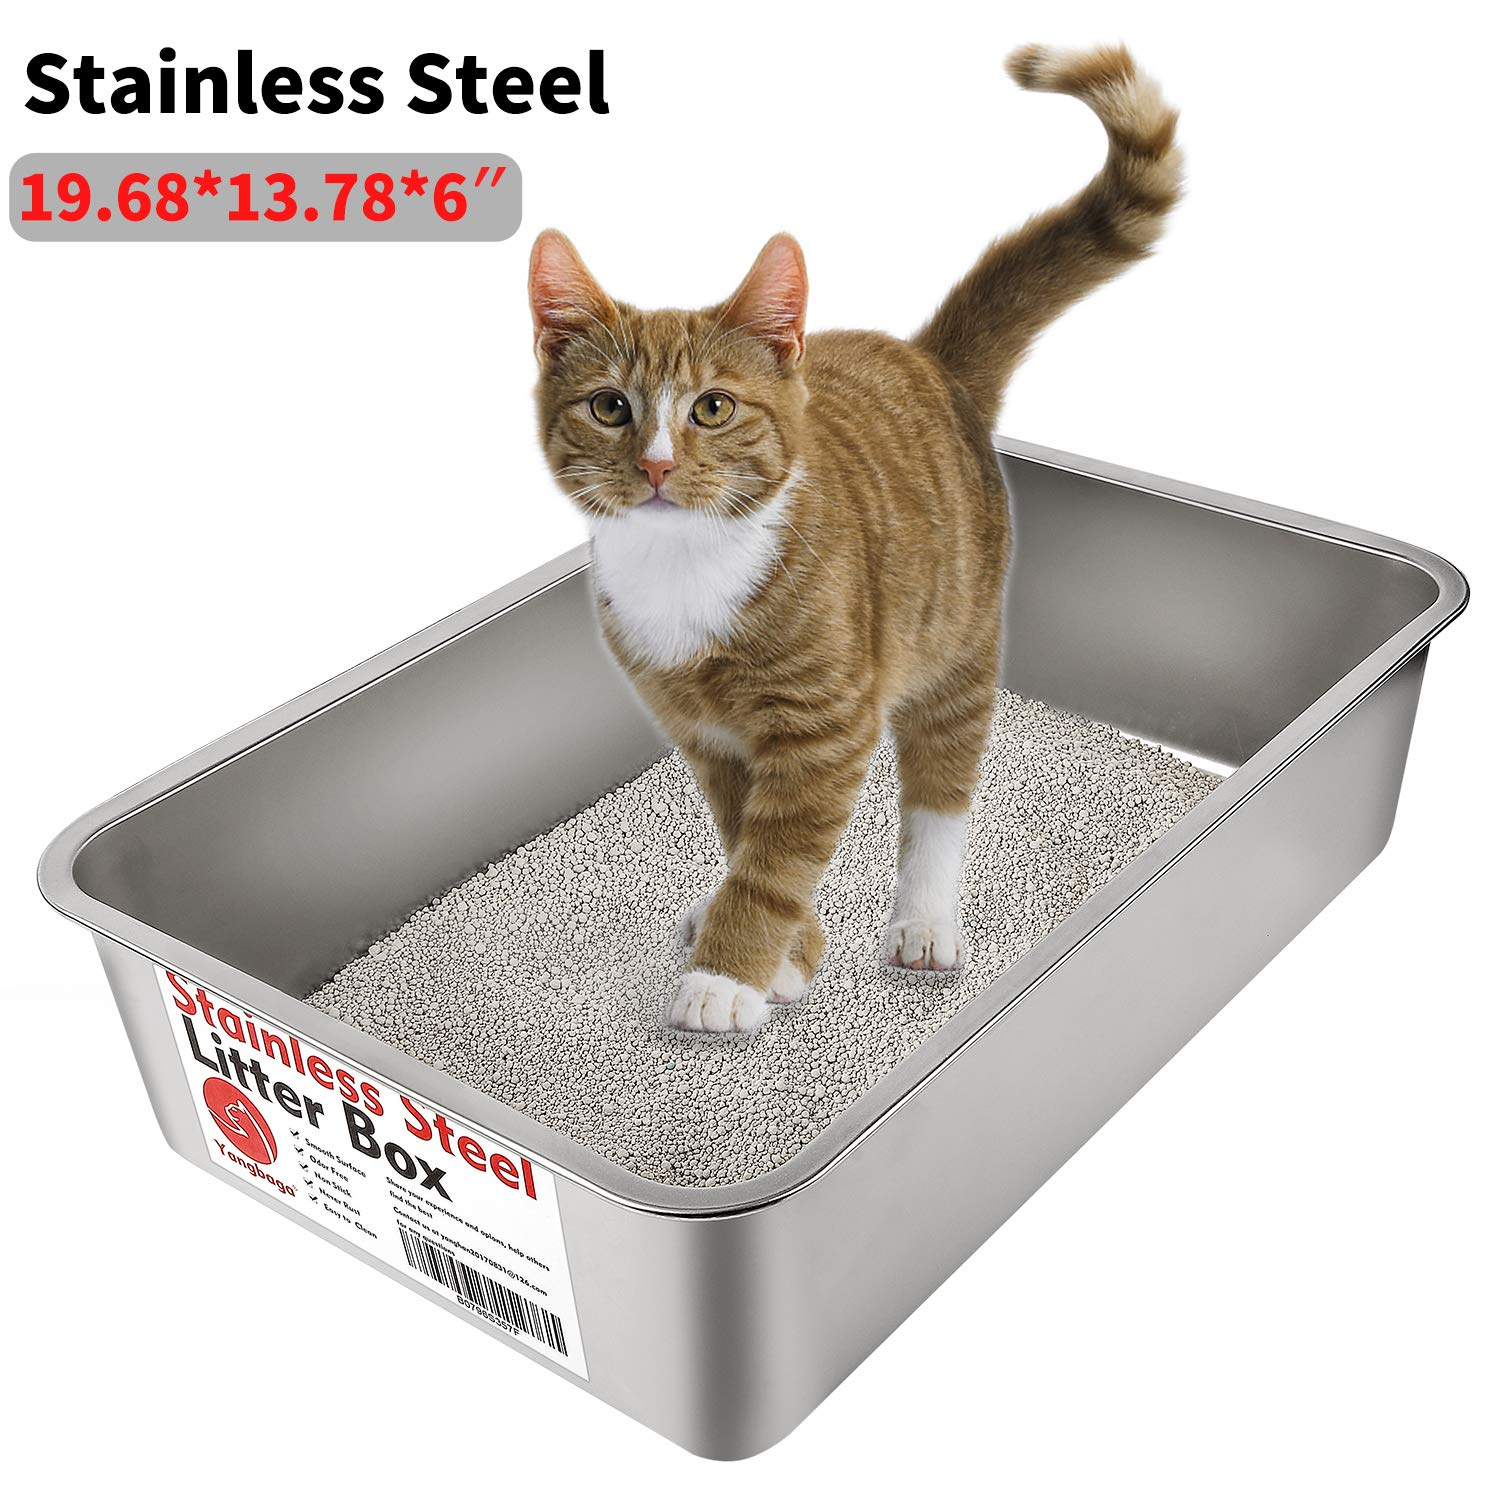 Yangbaga Stainless Steel Litter Box for Cat and Rabbit, Odor Control Litter Pan, Non Stick Smooth Surface, Easy to Clean, Never Bend, Rust Proof, Large Size with High Sides and Non Slip Rubber Feets by Yangbaga